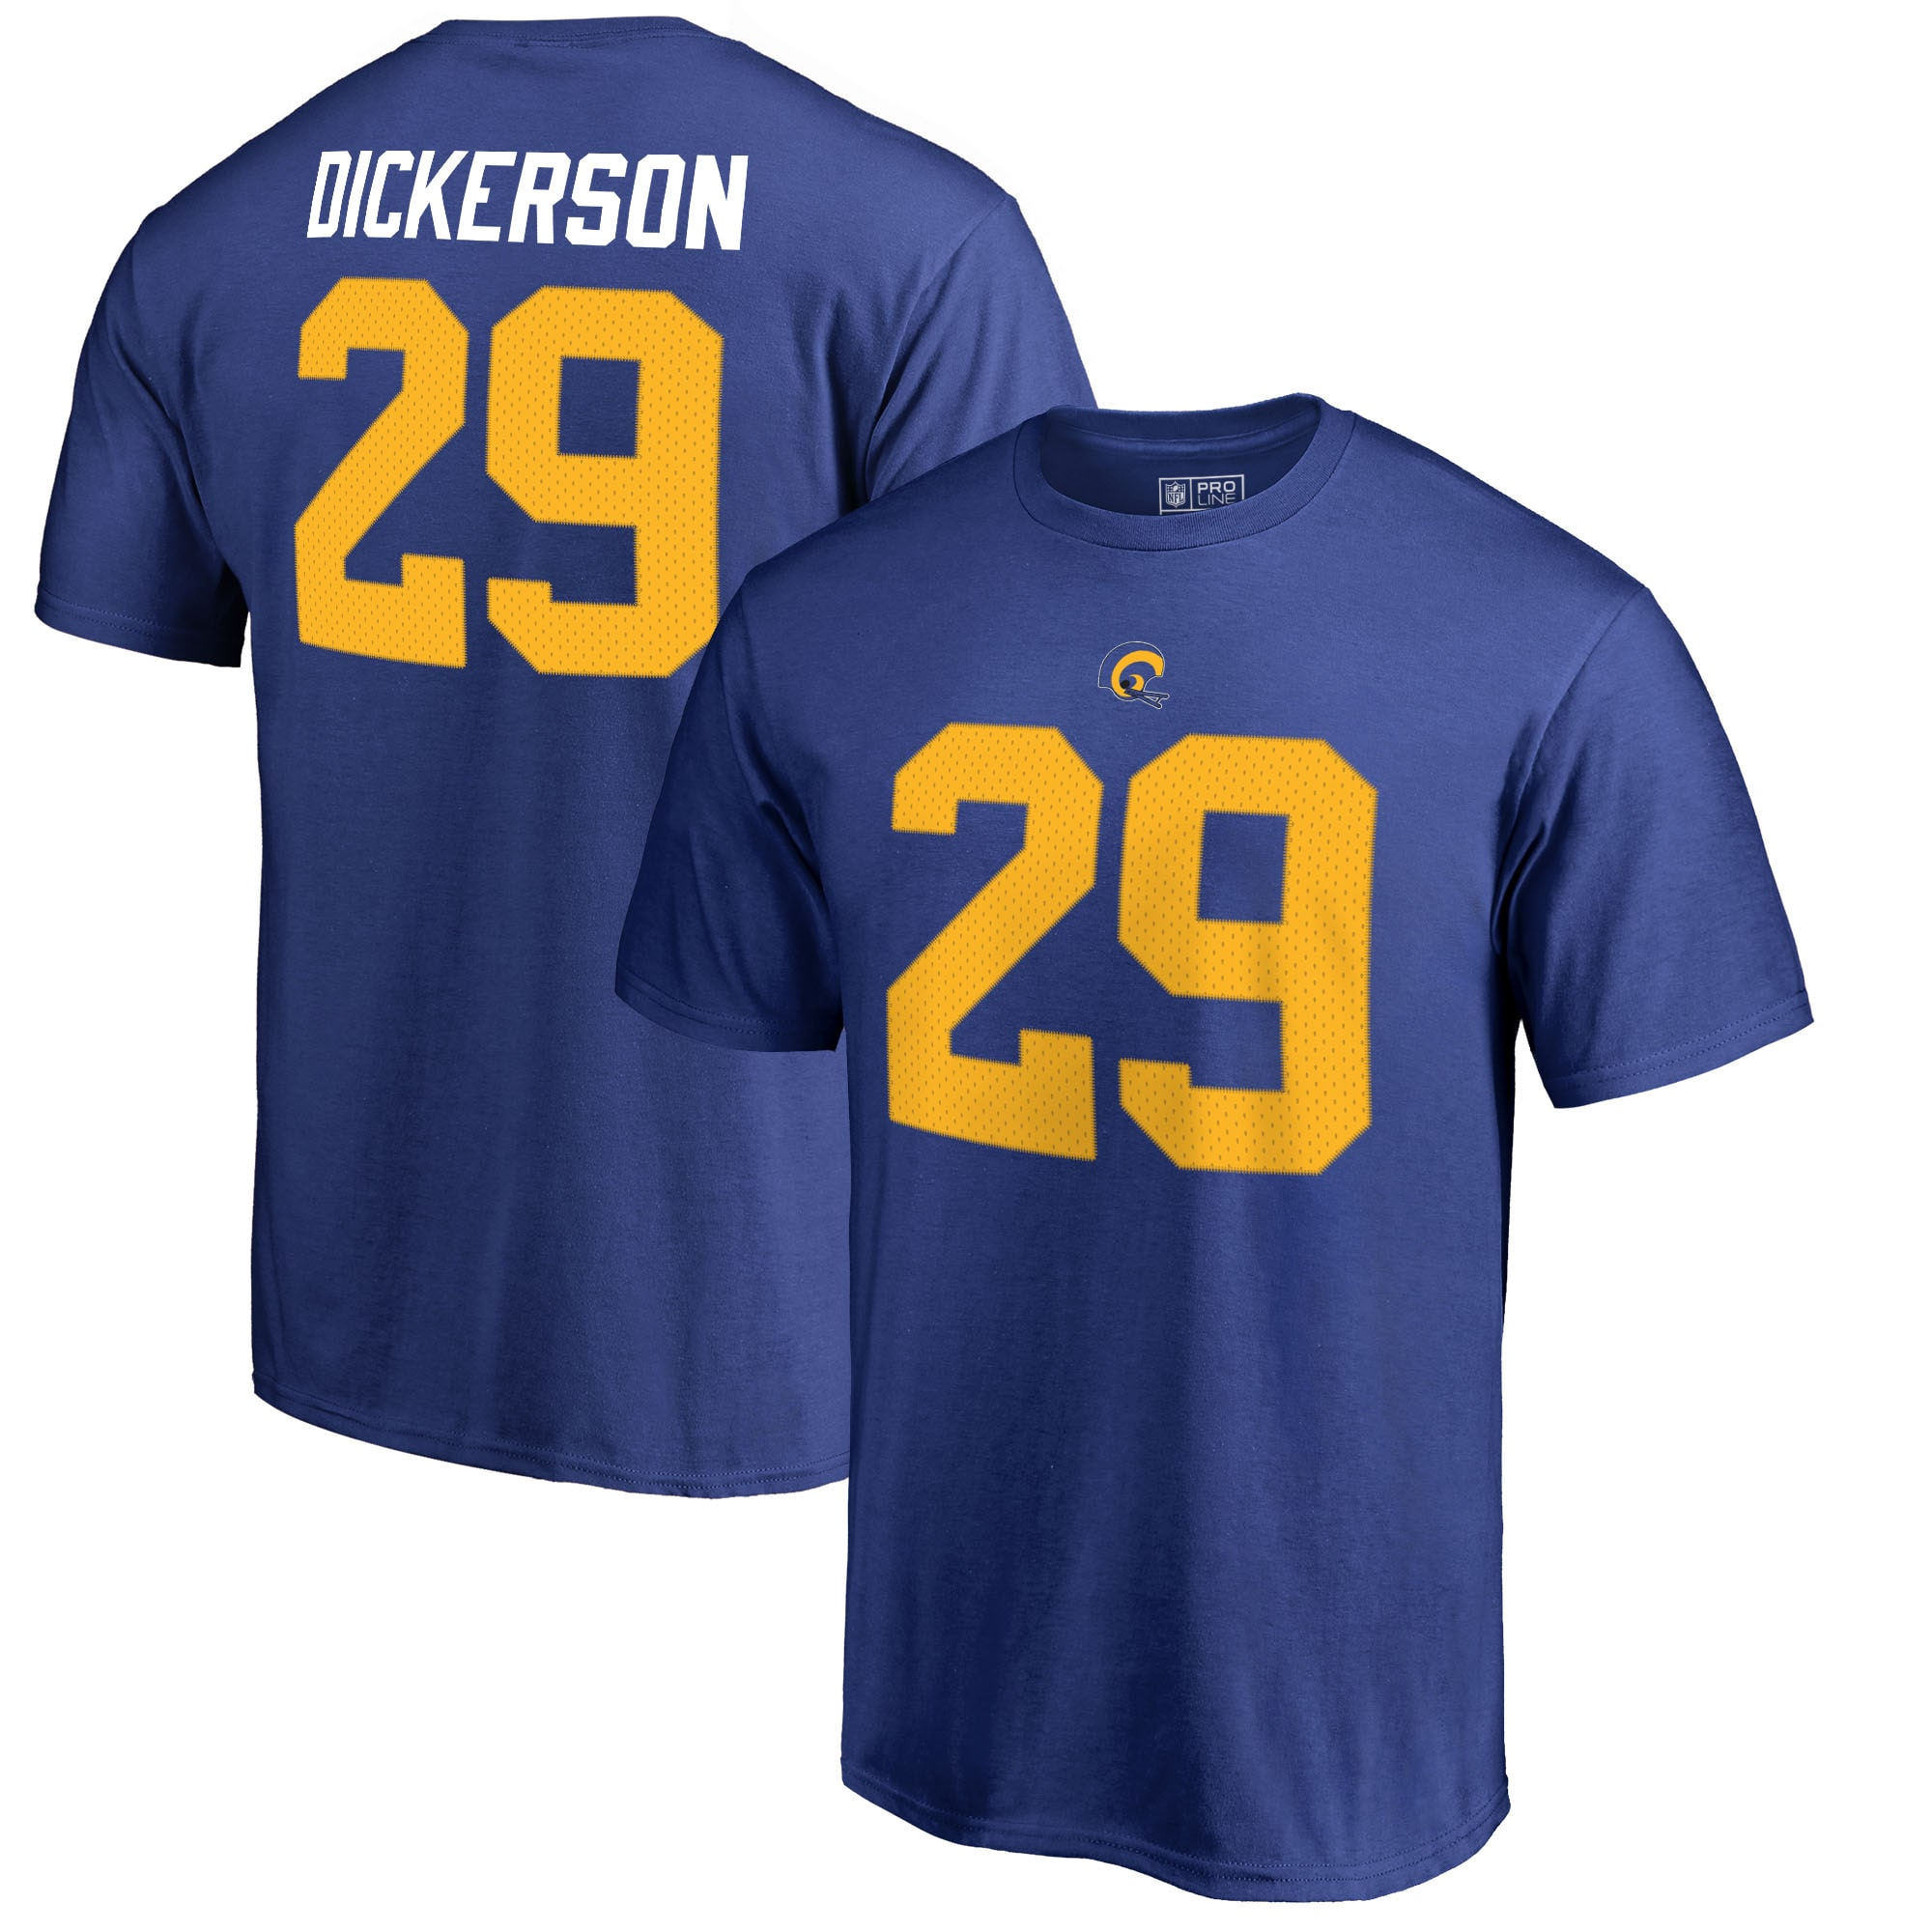 Eric Dickerson Los Angeles Rams NFL Pro Line by Fanatics Branded Retired Player Authentic Stack Name & Number T-Shirt - Royal